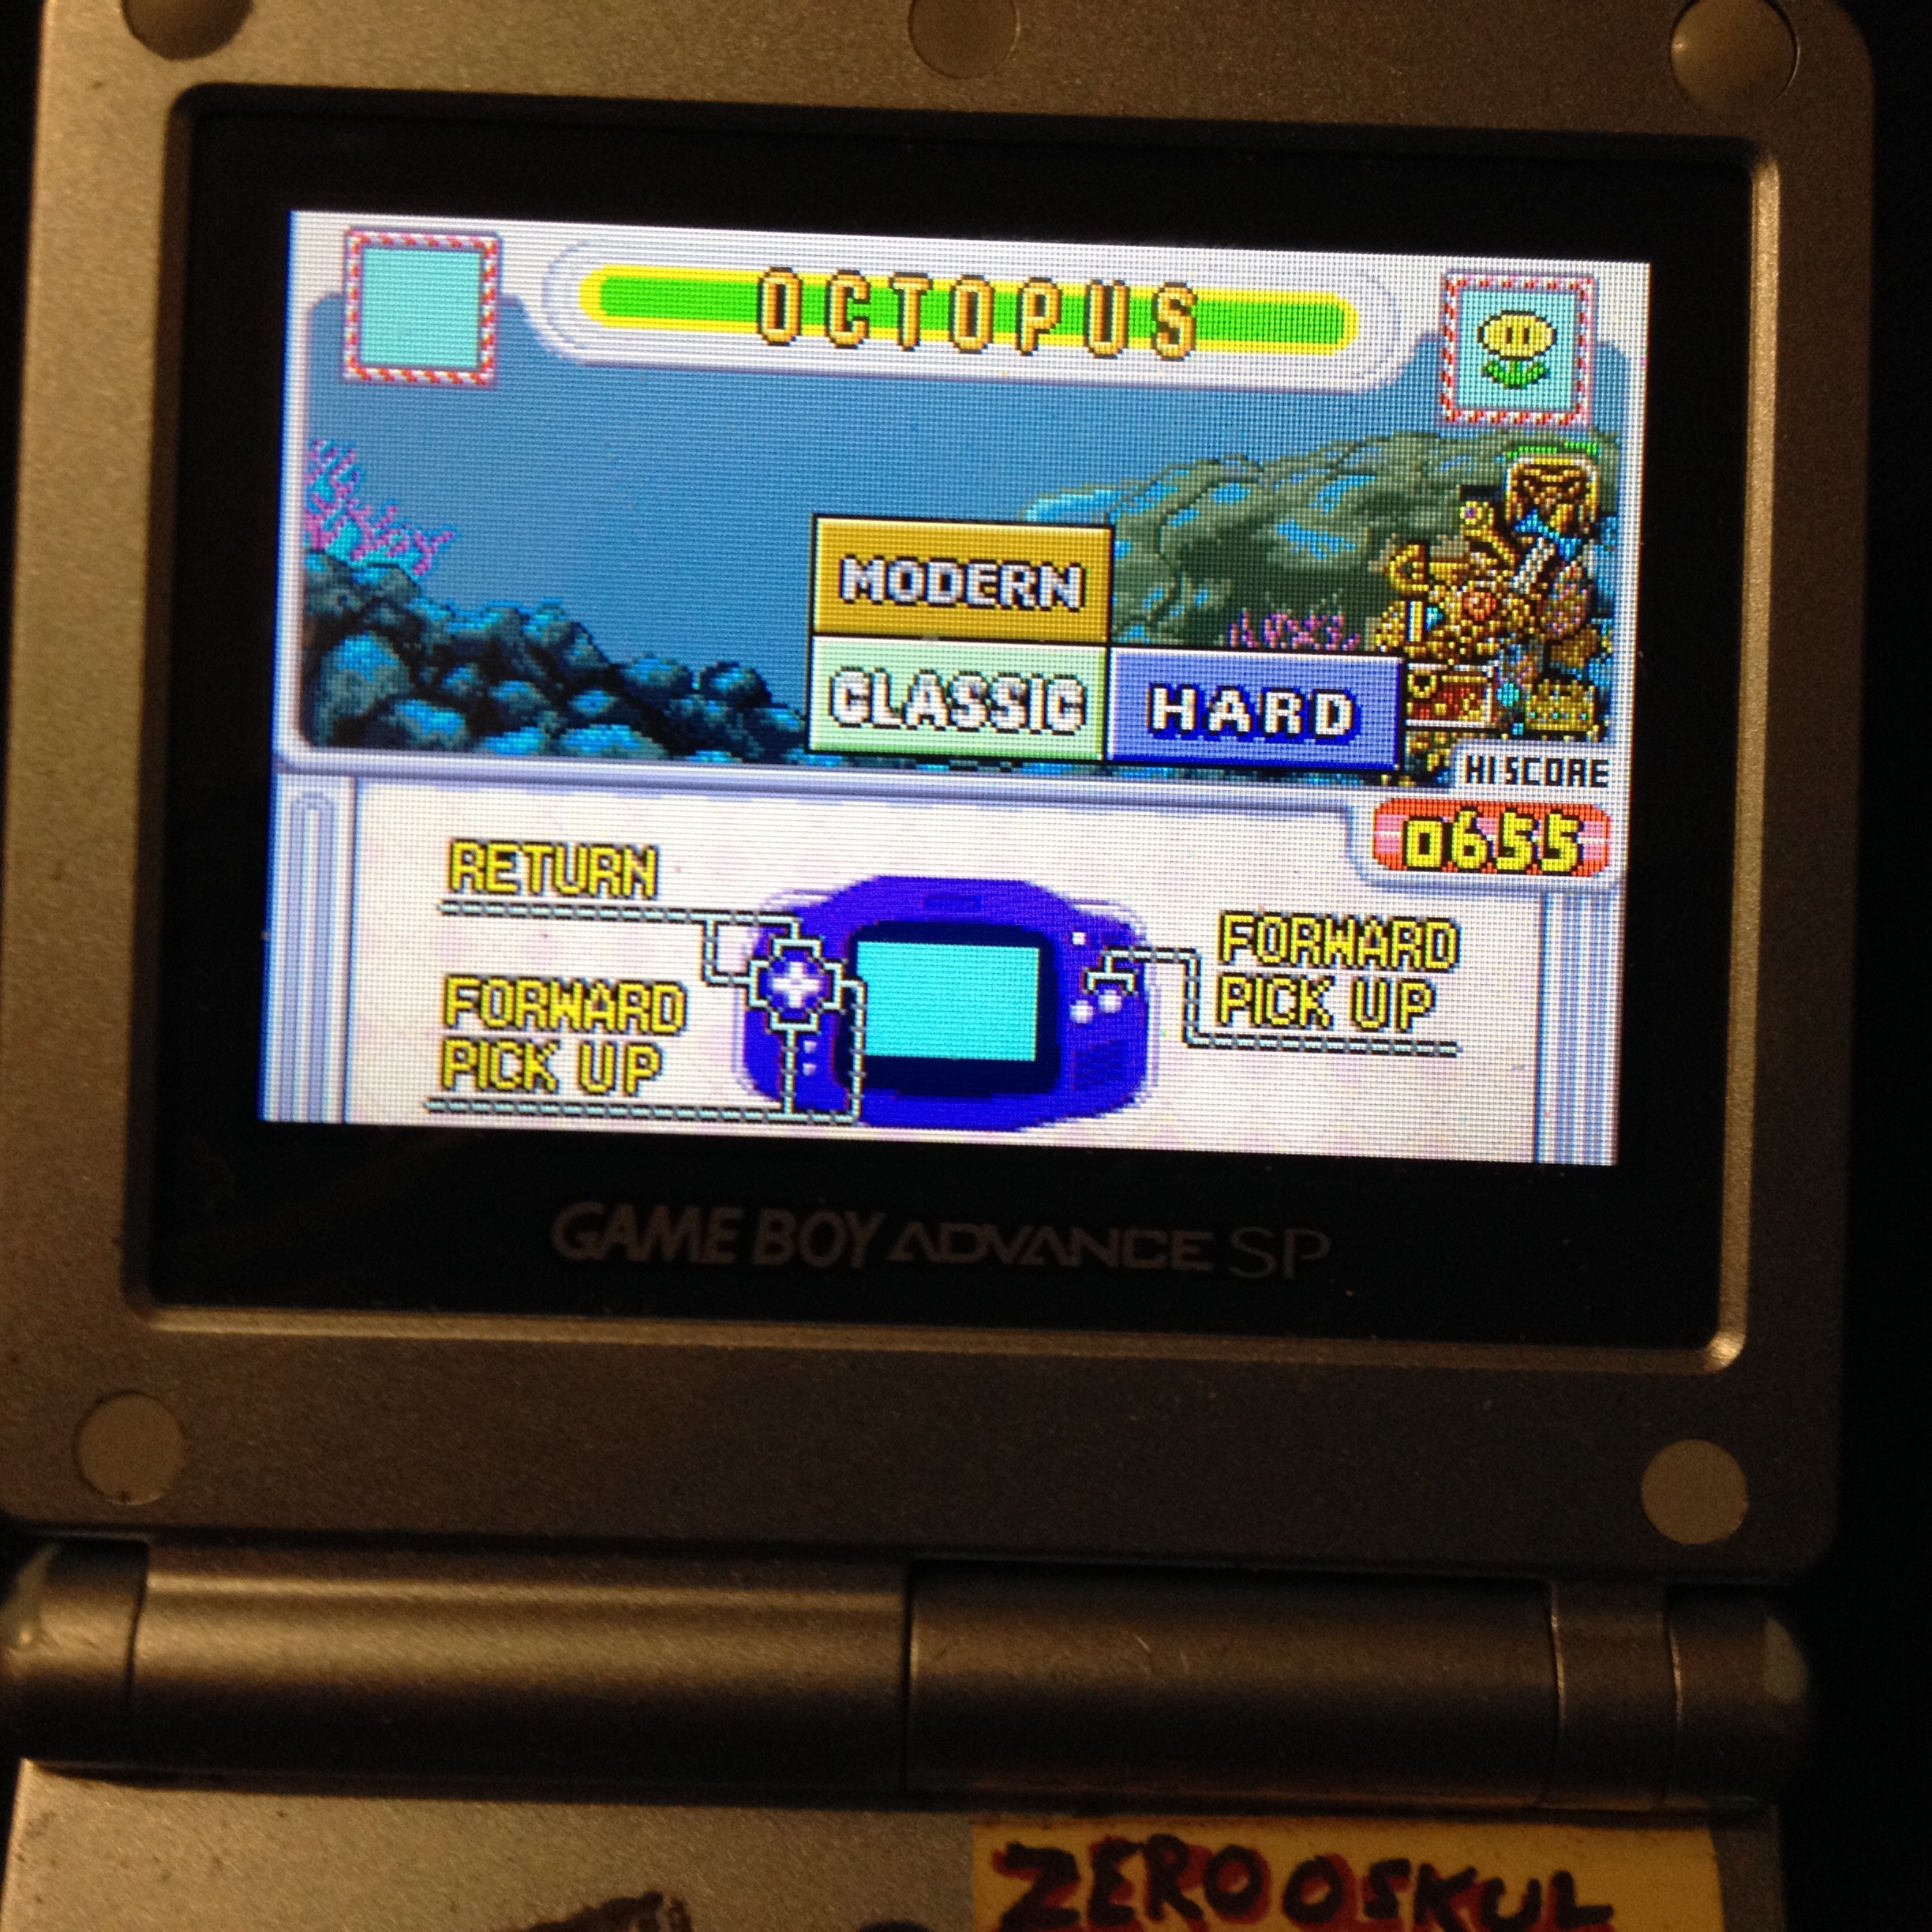 zerooskul: Game & Watch Gallery 4: Octopus [Classic: Hard] (GBA) 655 points on 2019-12-08 19:42:18